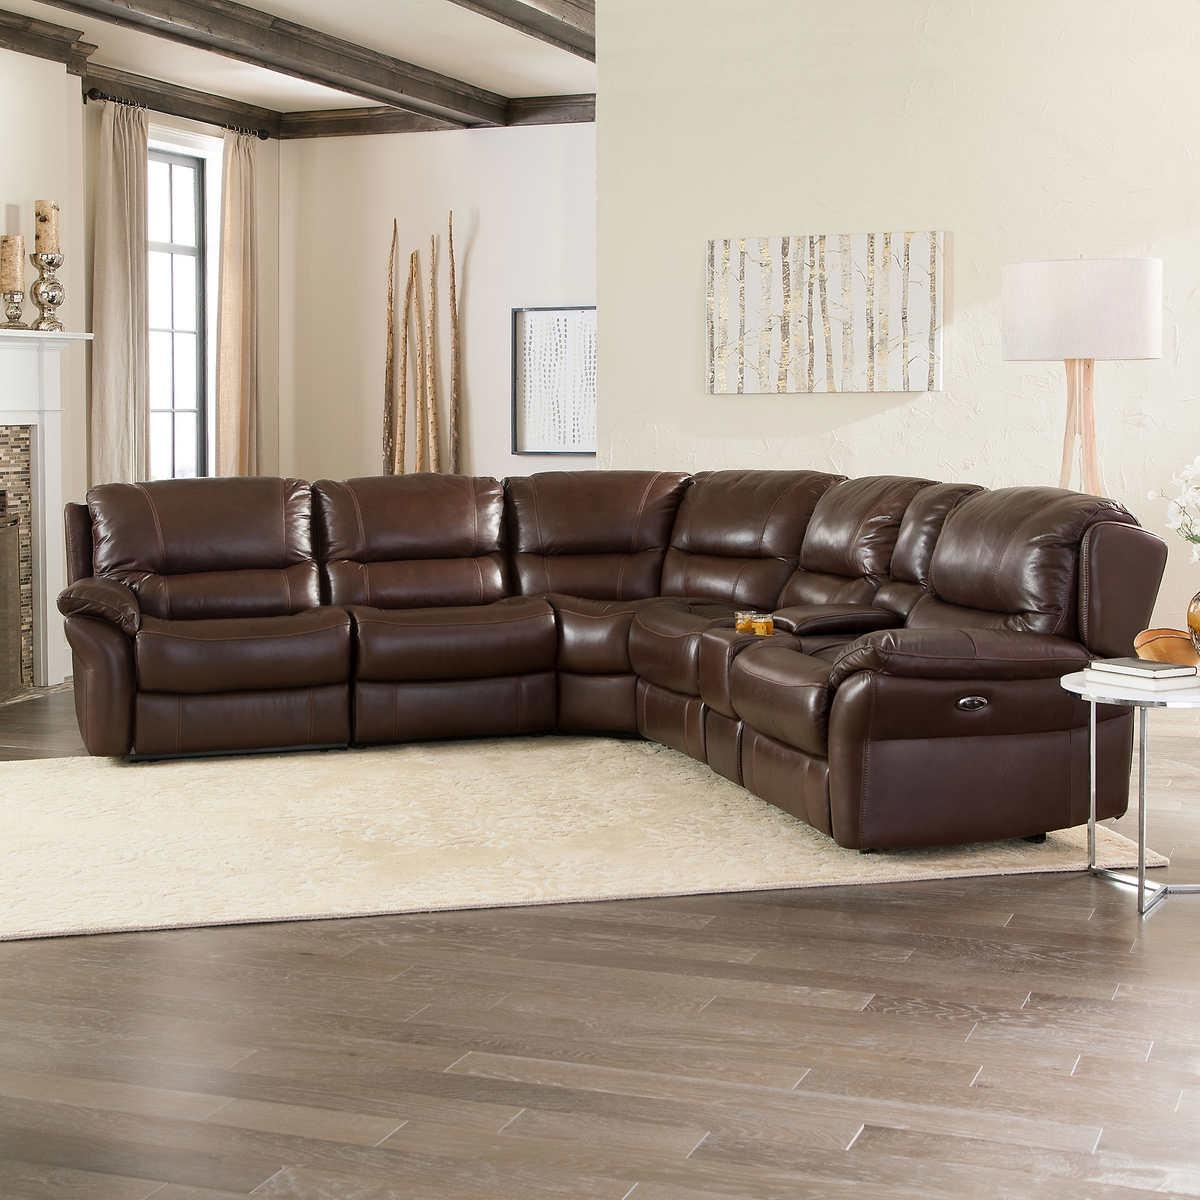 Leather Sectional Sofas With Recliners | Demand Sofas Set Pertaining To 6 Piece Leather Sectional Sofa (View 4 of 15)